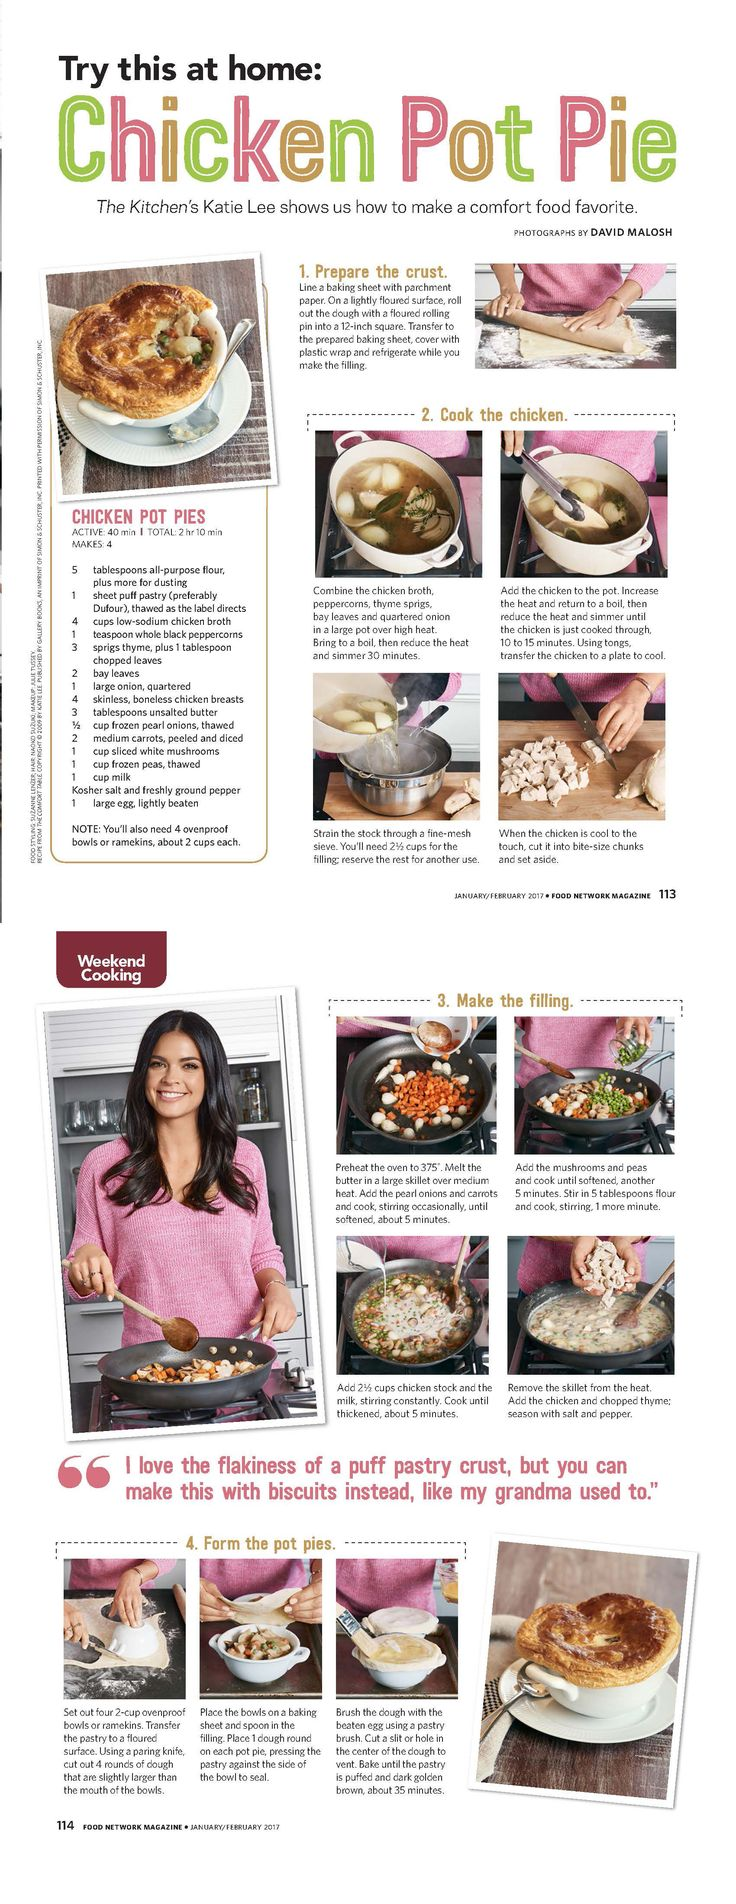 The Kitchen's Katie Lee offers a step-by-step tutorial on making her version of Chicken Pot Pie!